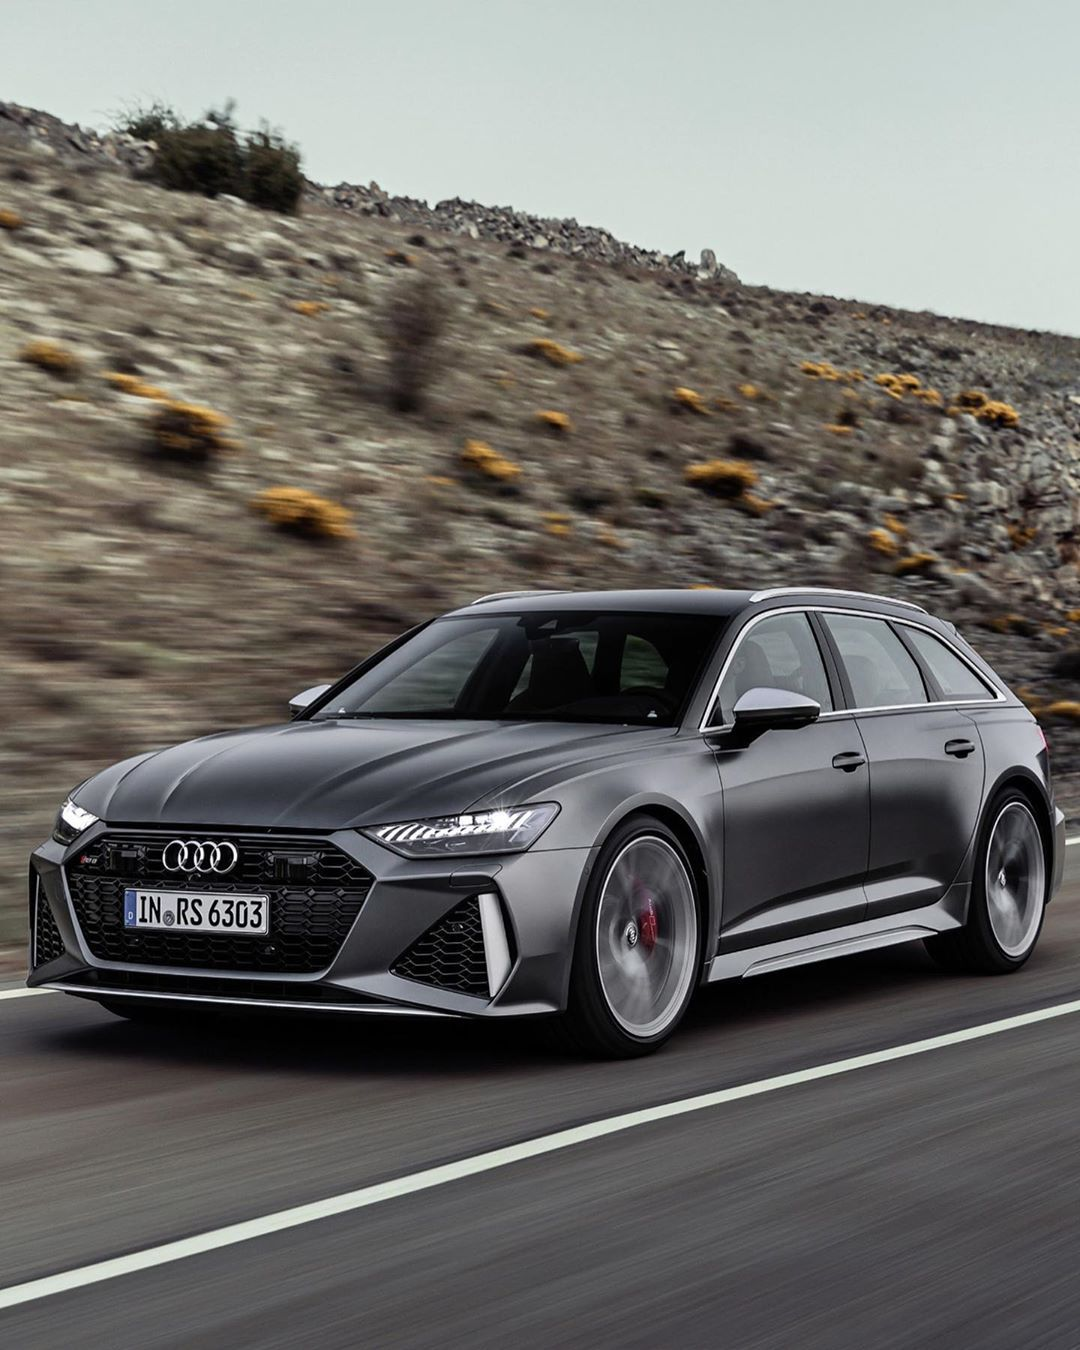 The 2020 Audi Rs6 Avant 4 0l Twin Turbo Mild Hybrid V8 With 592hp And 590lb Ft 8 Speed Automatic With Quattro Awd 0 62mph In 3 6 Secon Audi Rs6 Audi Rs Audi